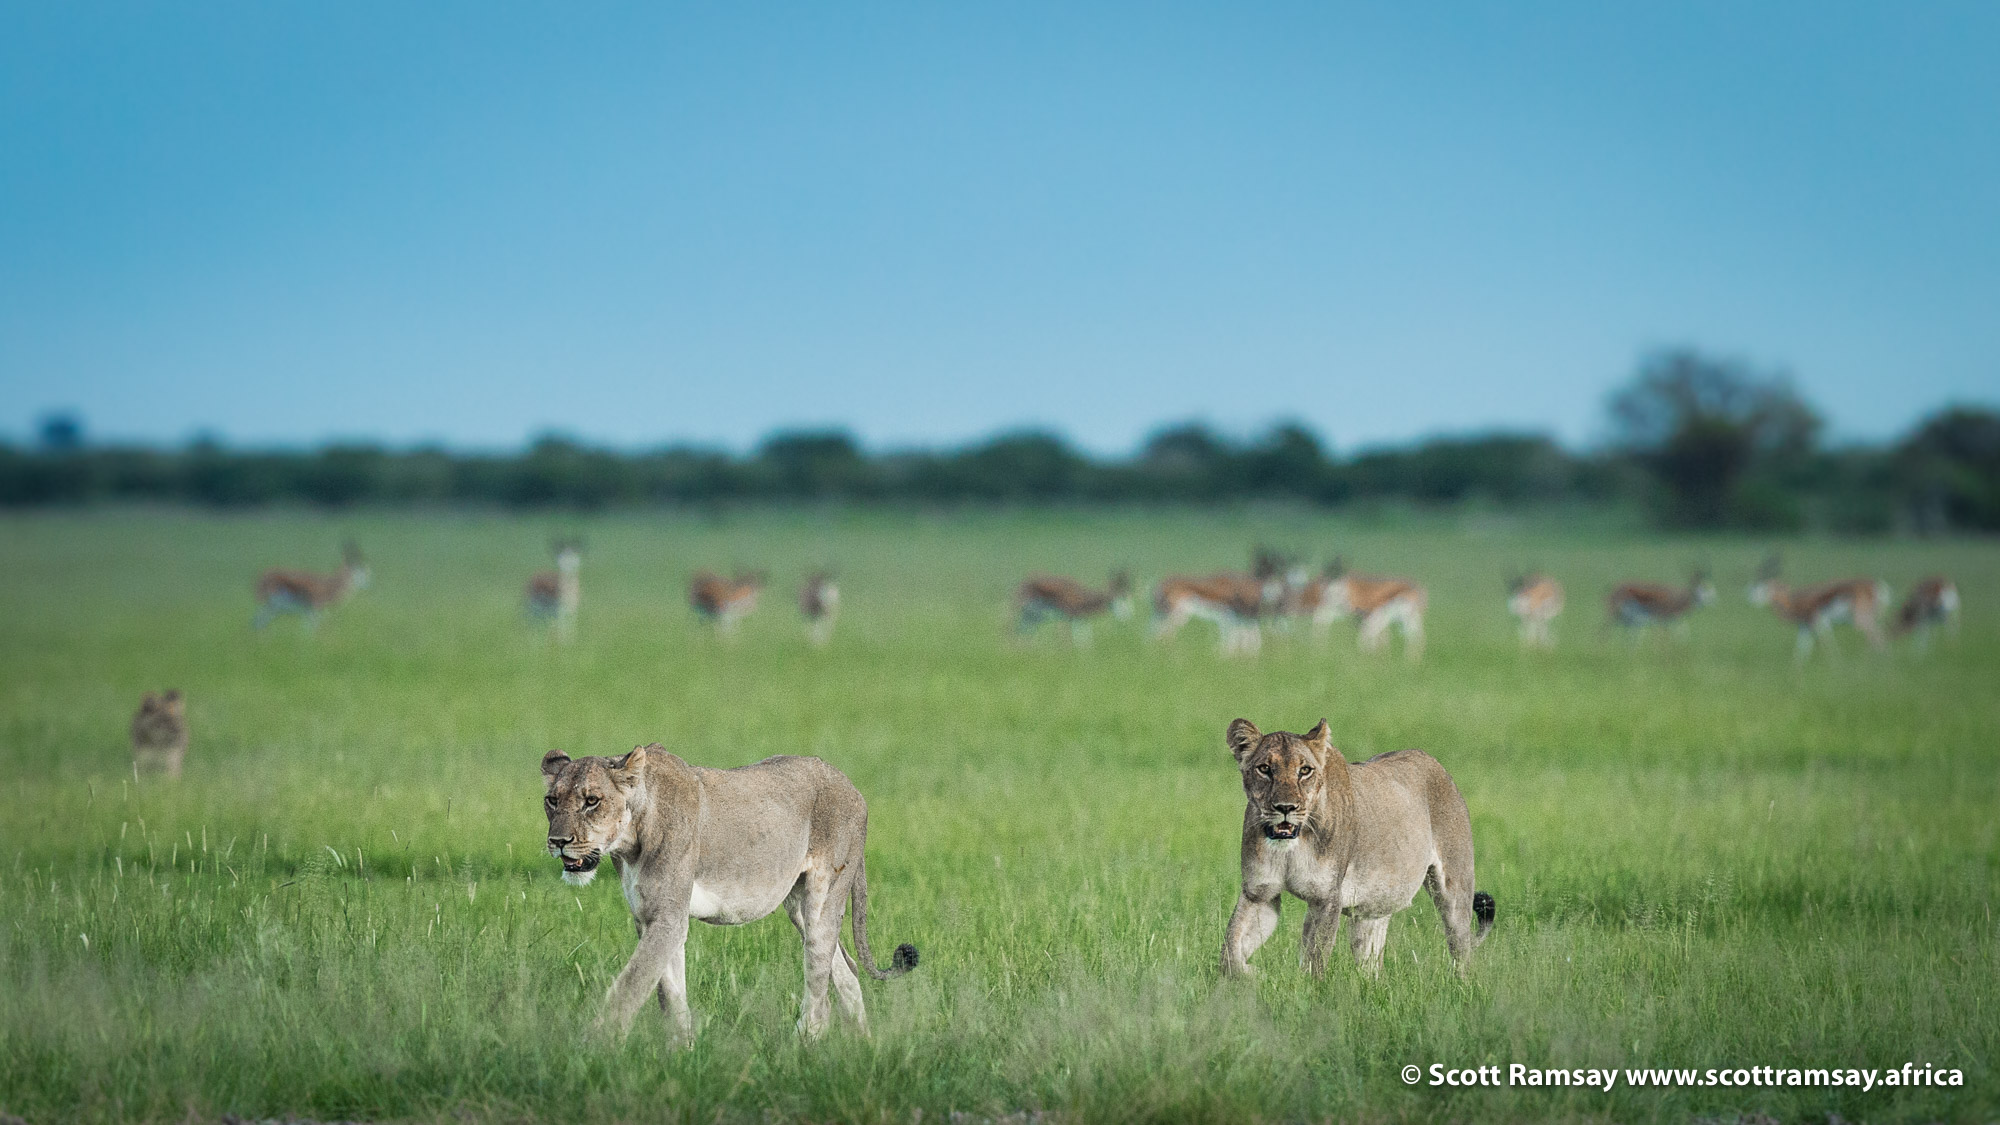 Two more lionesses came to join mom and kids...